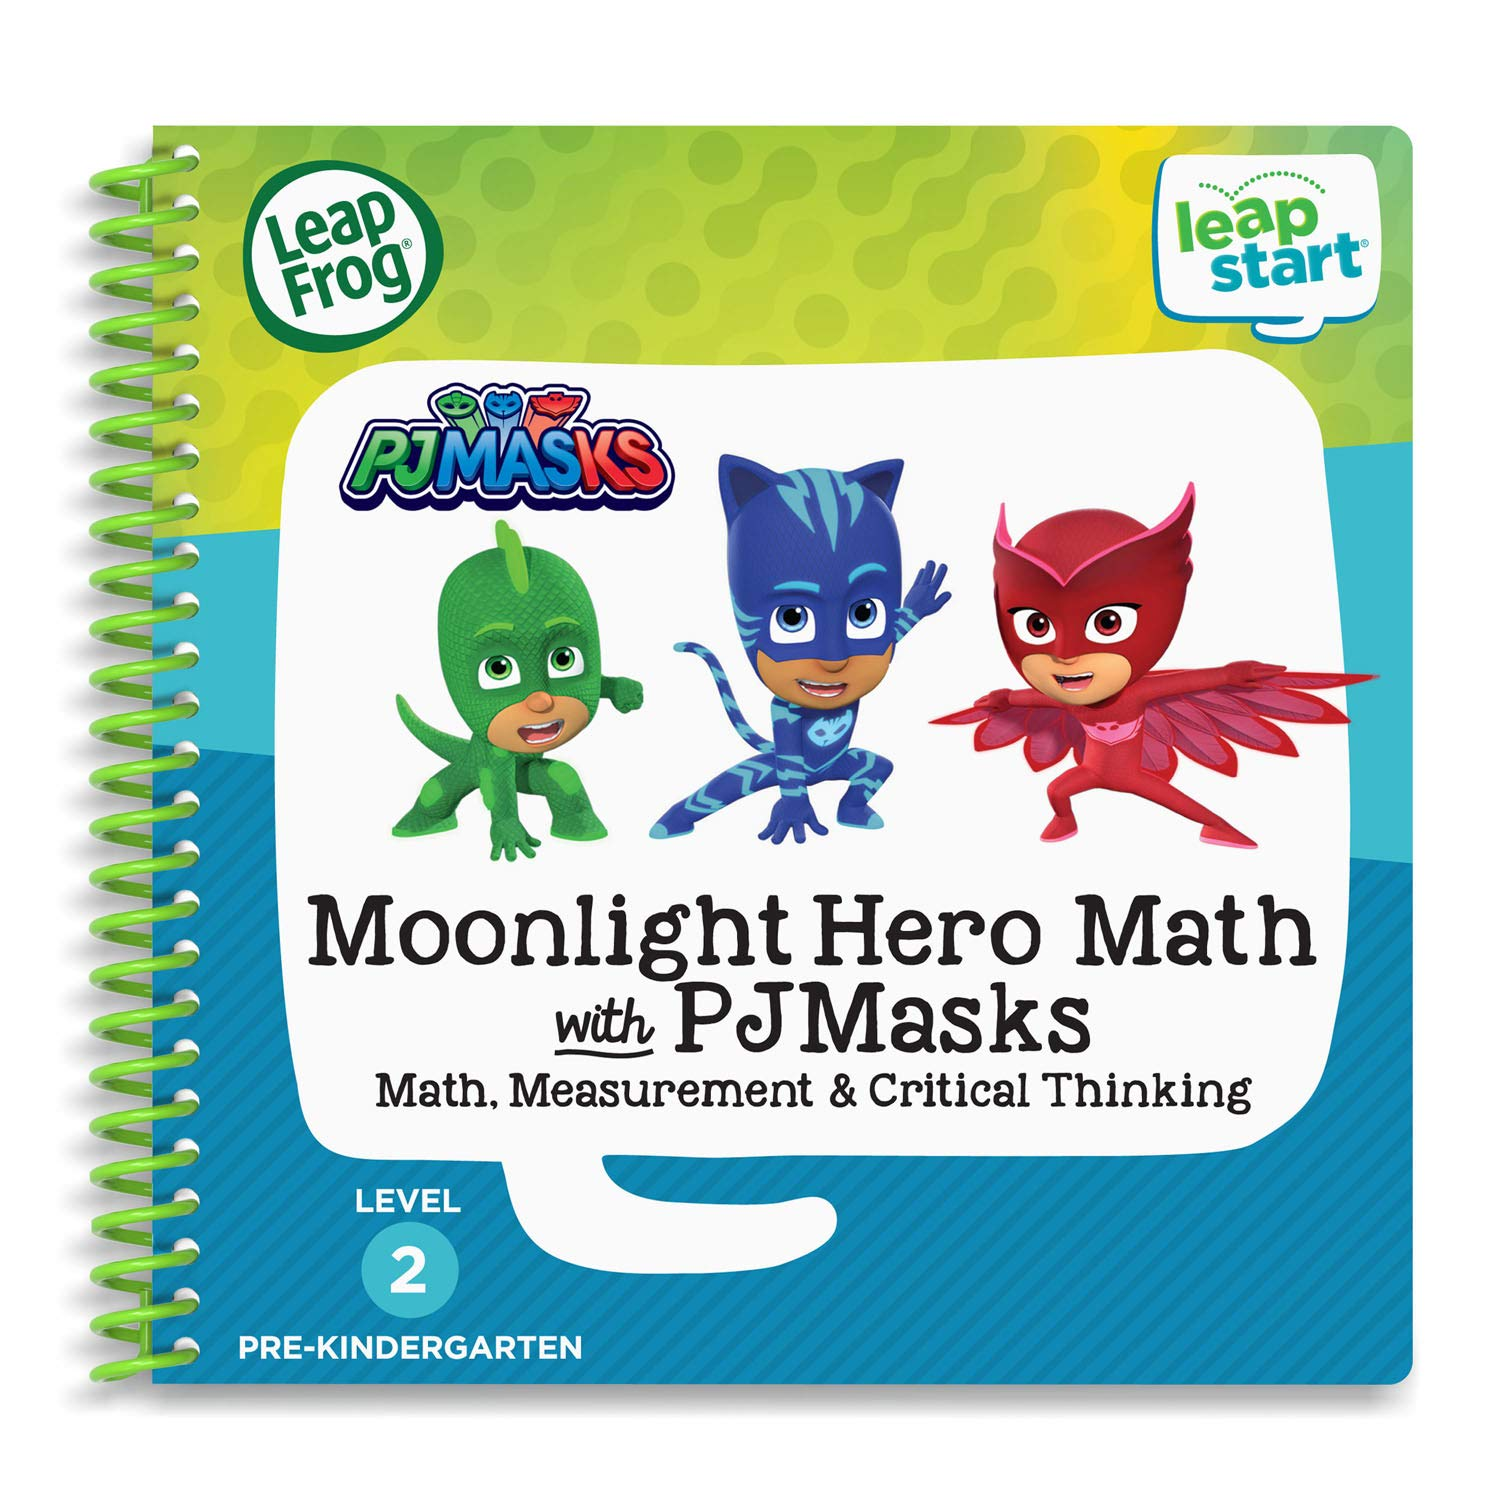 LeapFrog LeapStart 2 Book Combo Pack Scout /& Friends Math and Moonlight Hero Math with PJ Masks